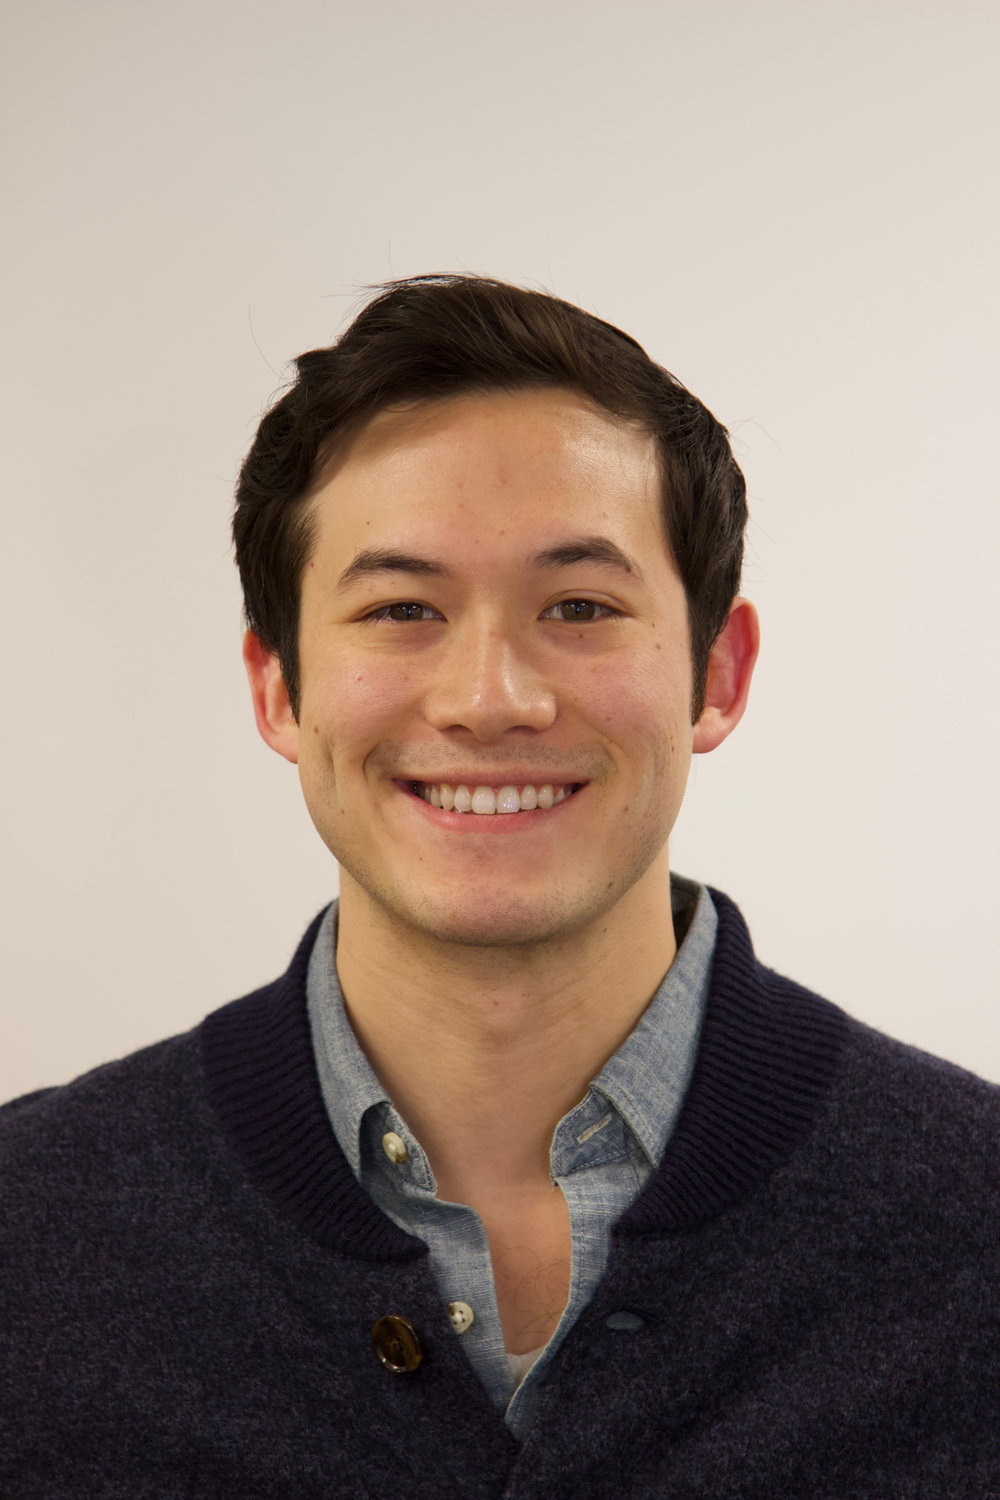 James Morrissey - Co-Founder and COO